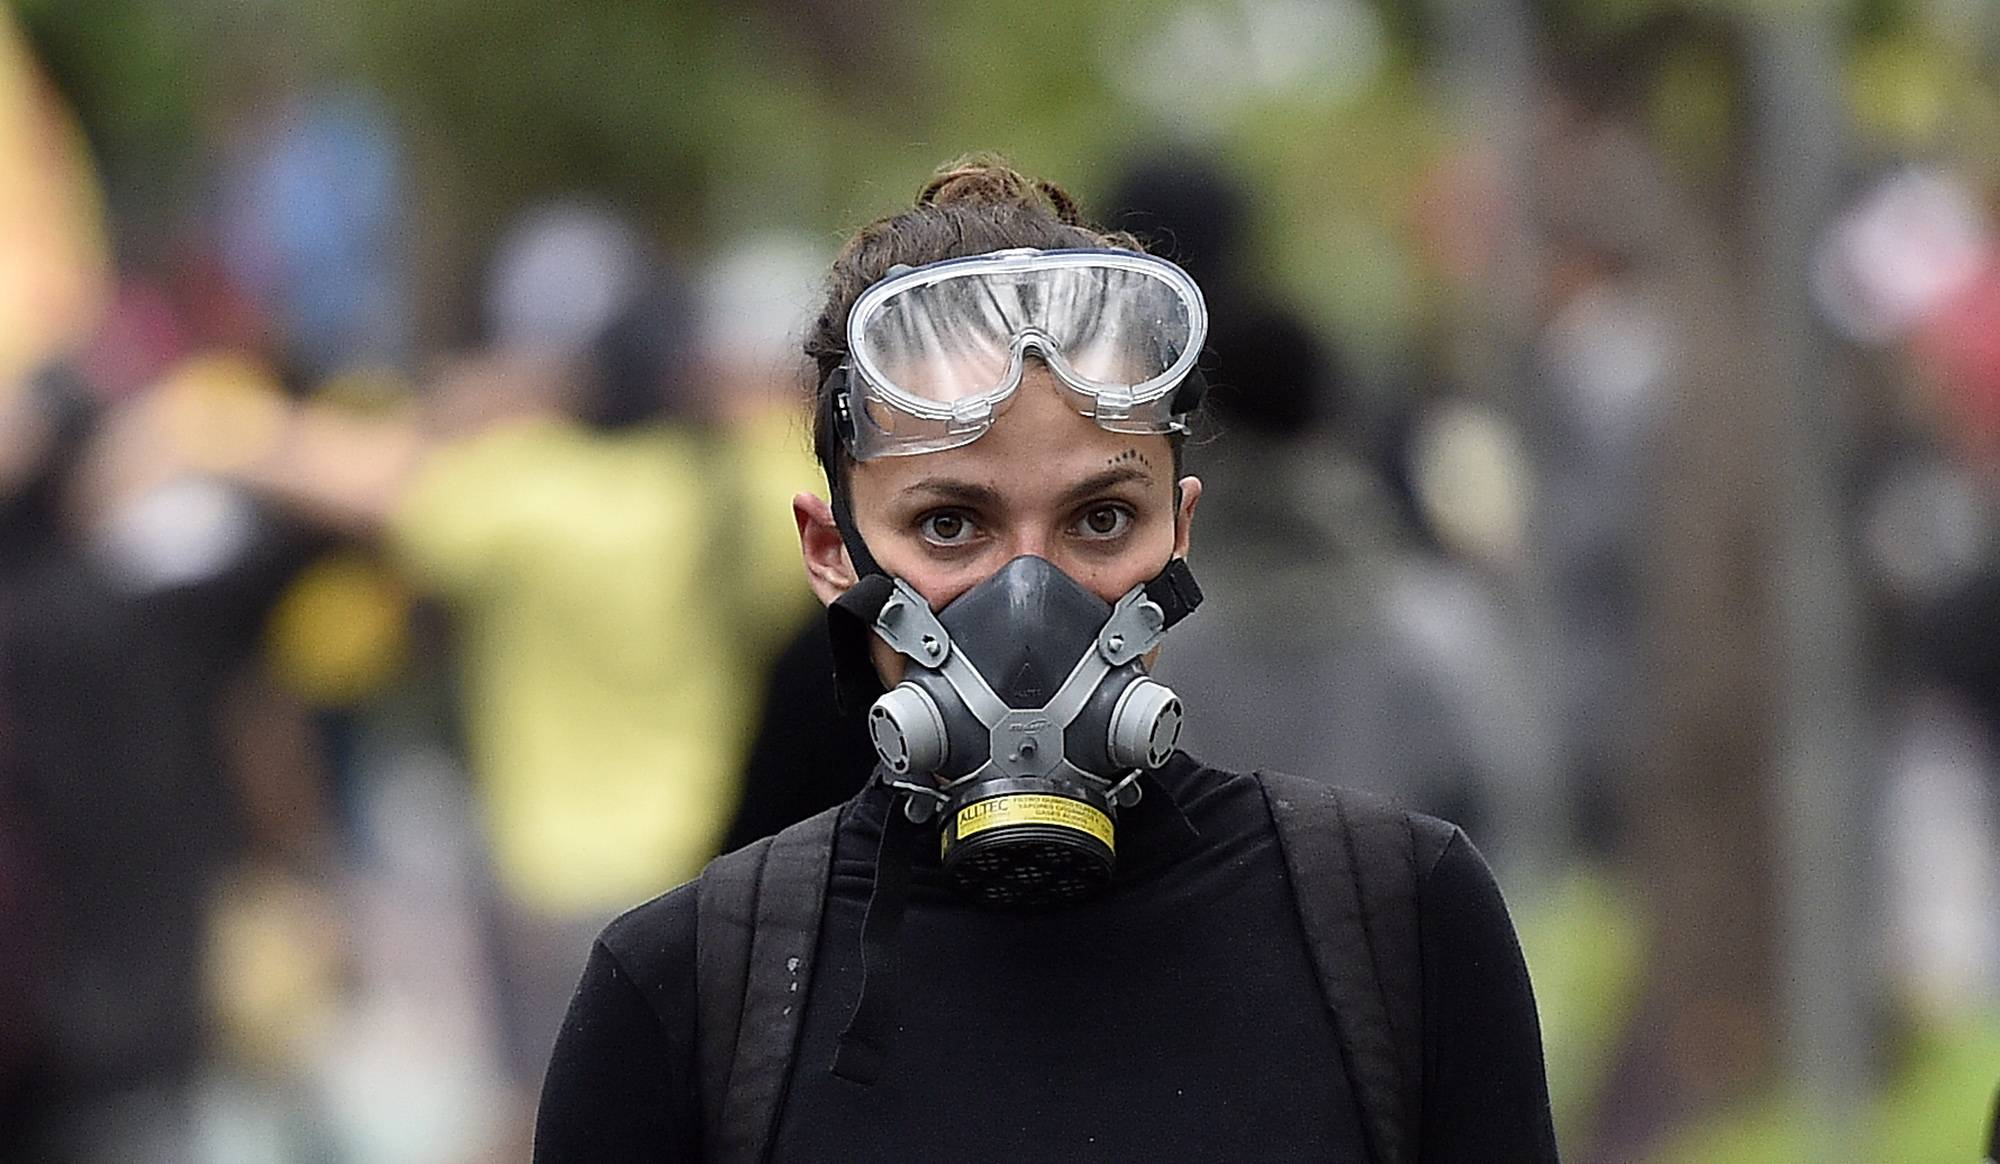 A young woman with a gas mask is seen with protesters during a violent demonstration during the 2014 soccer World Cup in the center of Belo Horizonte , Brazil, Thursday, June 12, 2014.  Protesters clashed with police at a rally against the World Cup, in a central plaza demanding better public services and protesting the money spent on the soccer tournament.